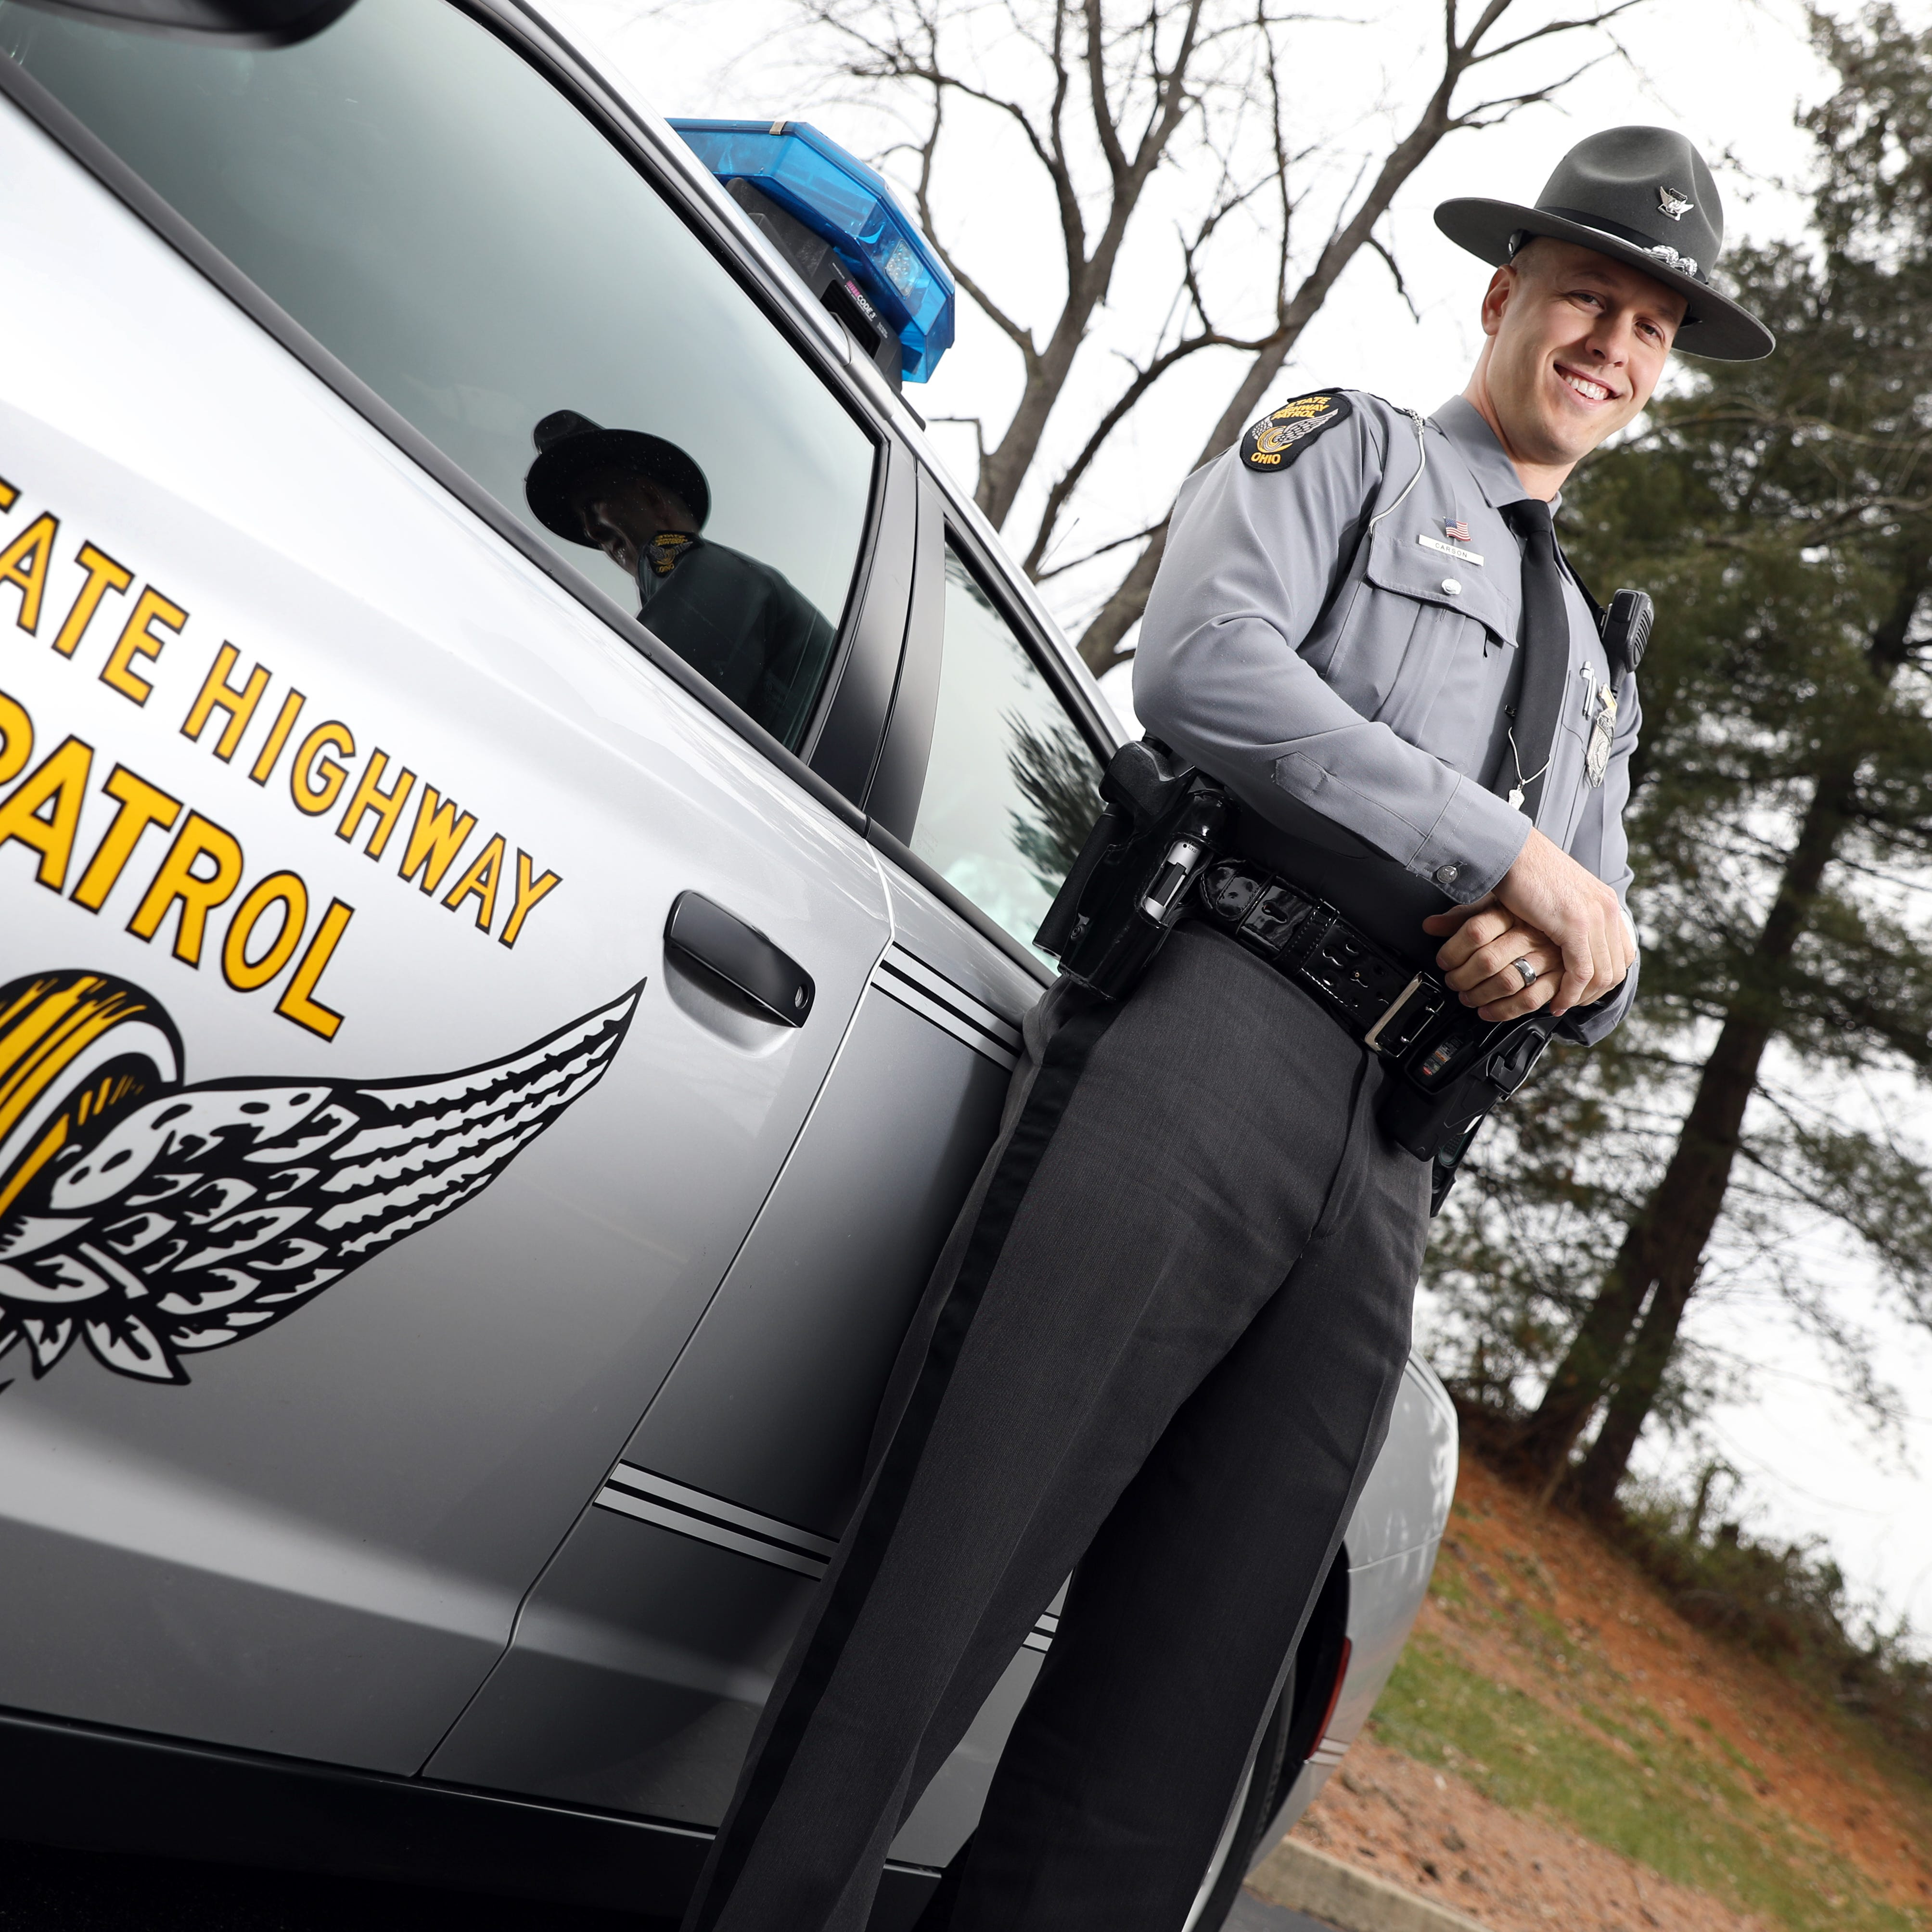 Local trooper honored by two districts for his work